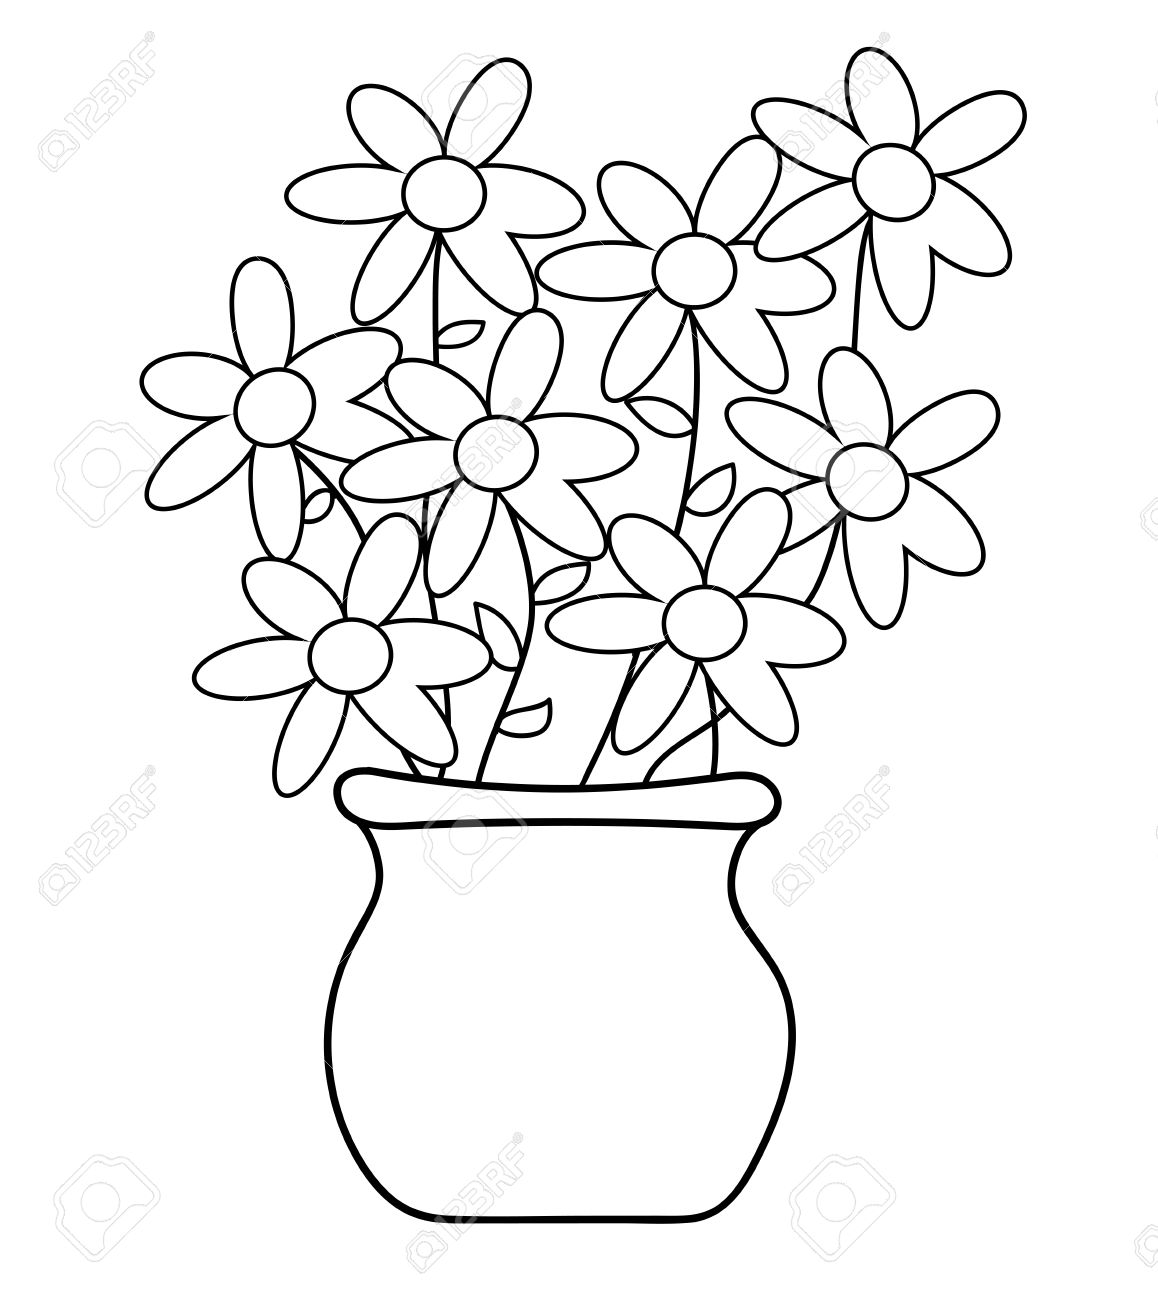 Flower Pot Coloring Page Stock Vector